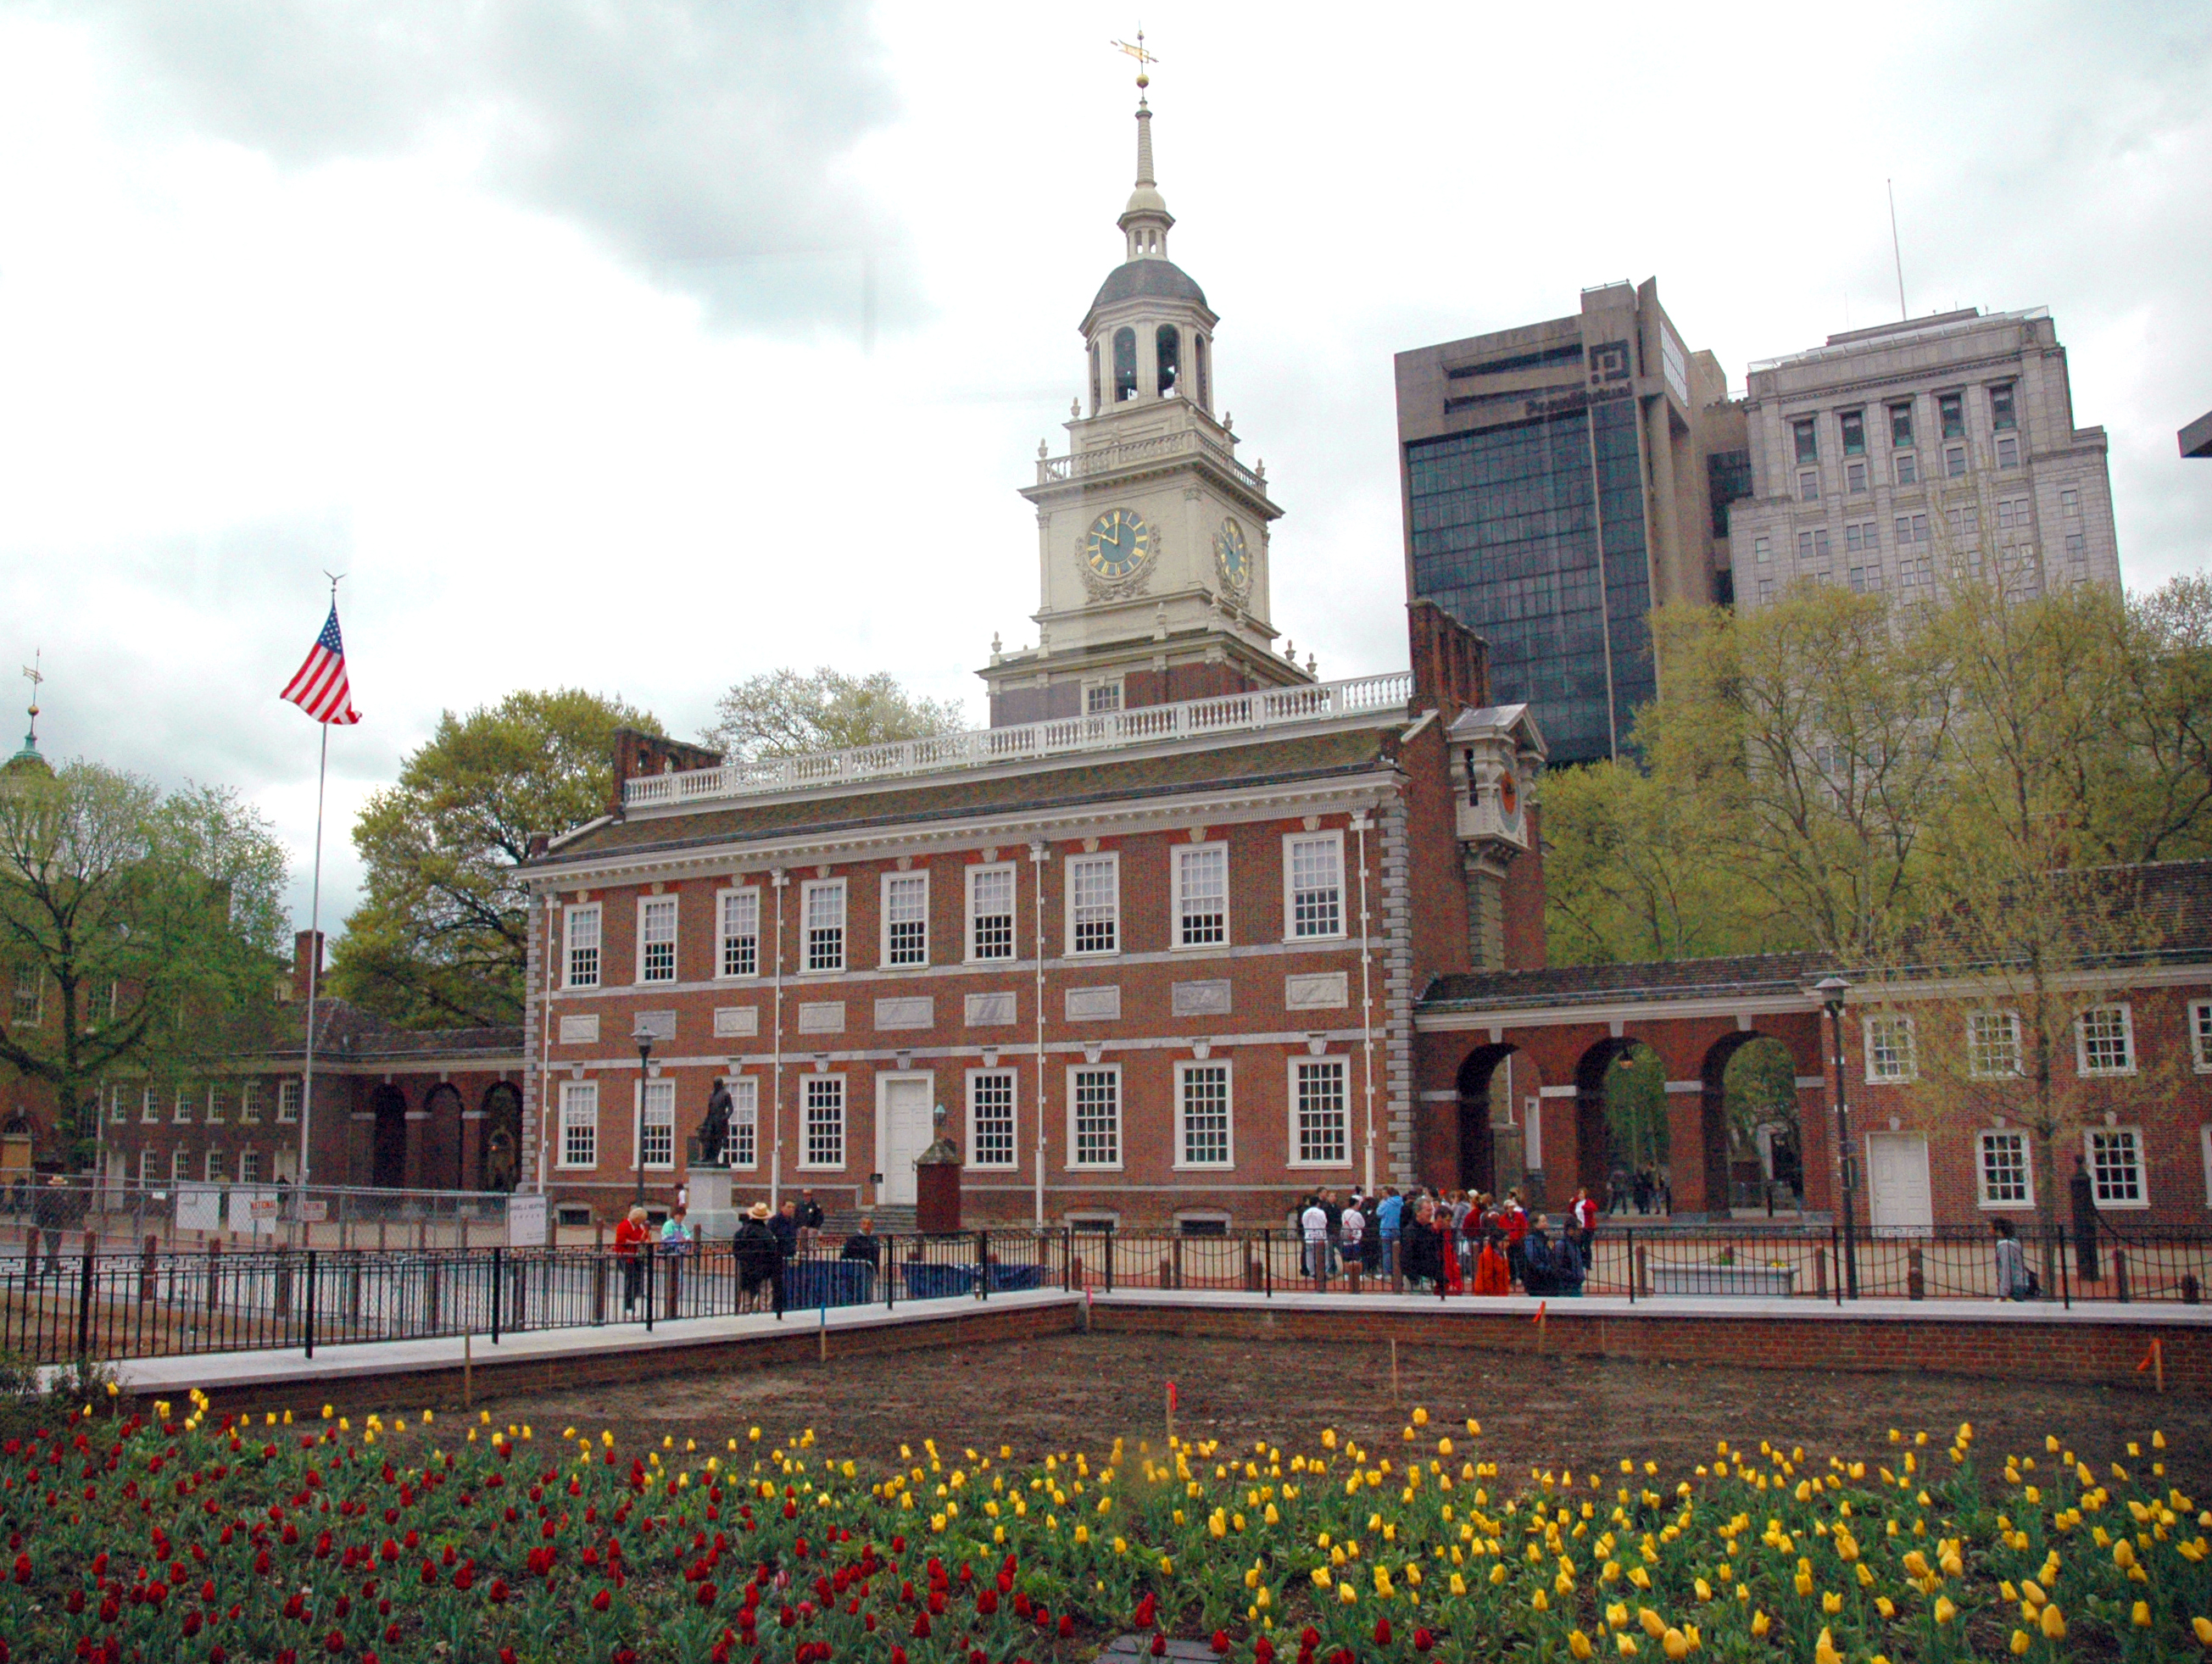 Independence Hall in Philadelphia in the Commonwealth of Pennsylvania